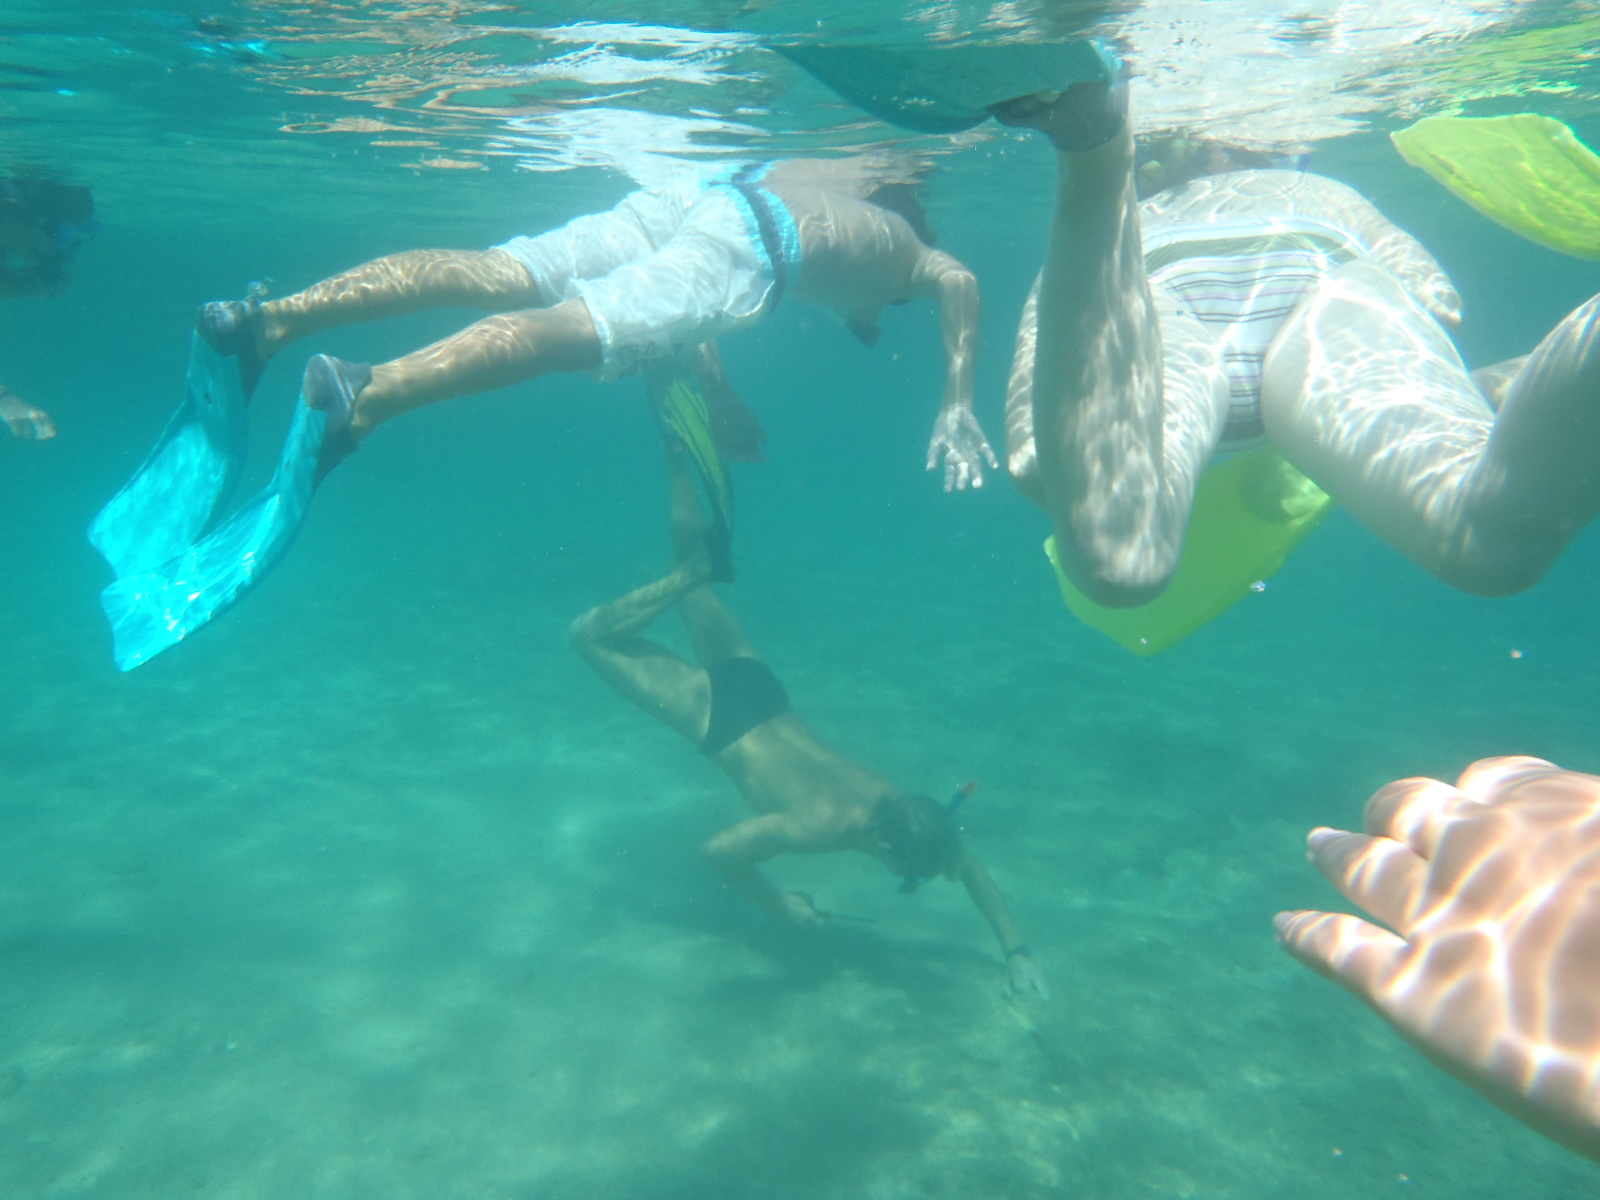 Kinds underwater snorkling together